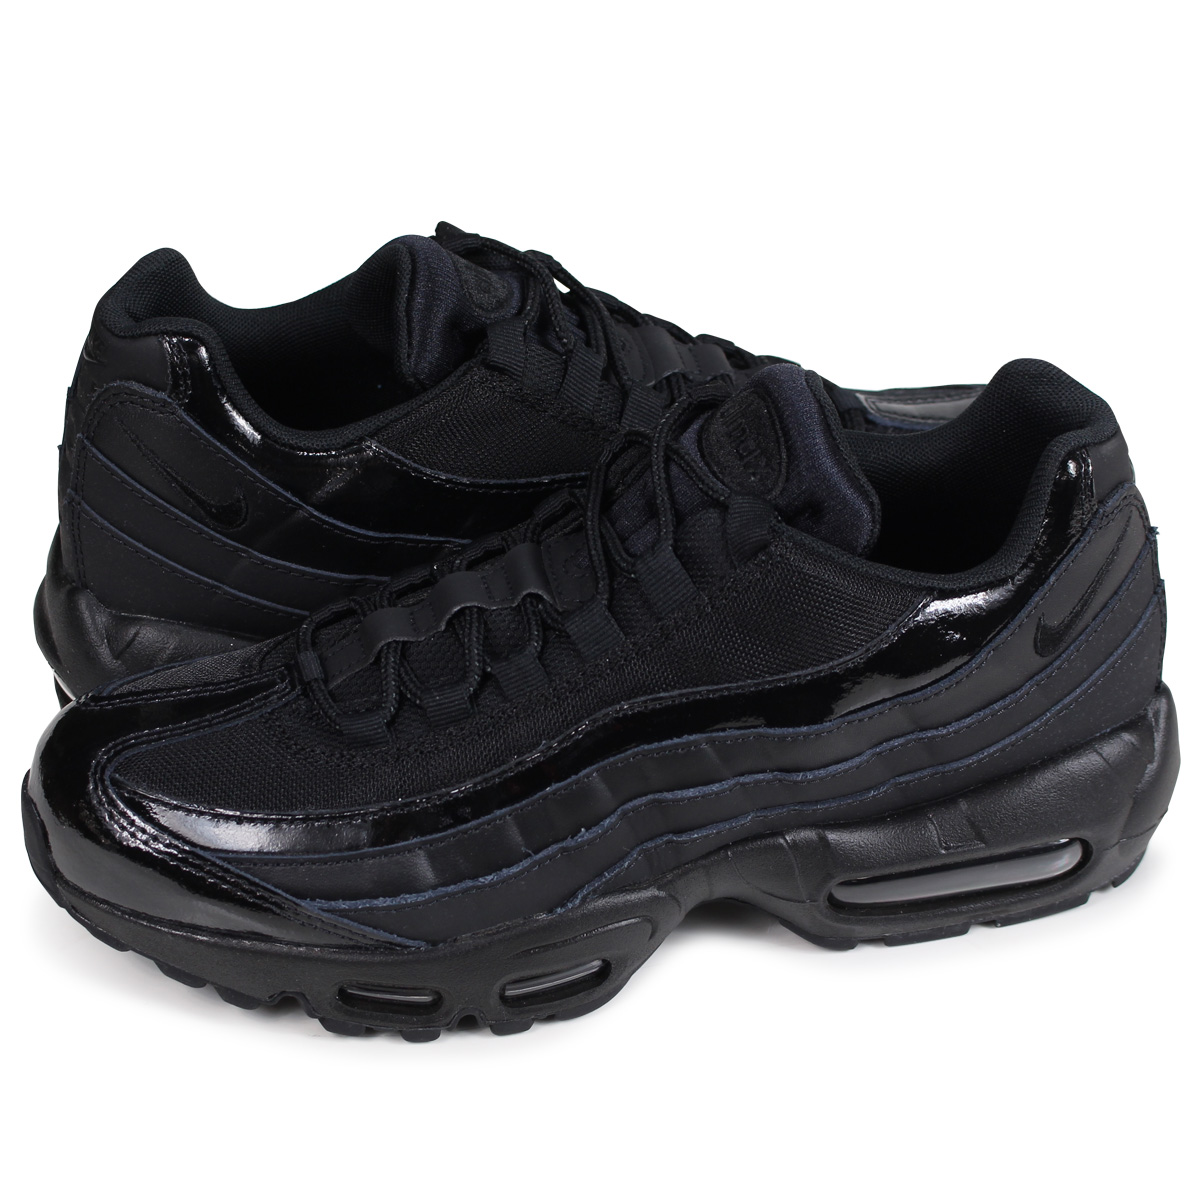 Nike Air Max 95 BlackBlack Black Men's Running Shoes 307960